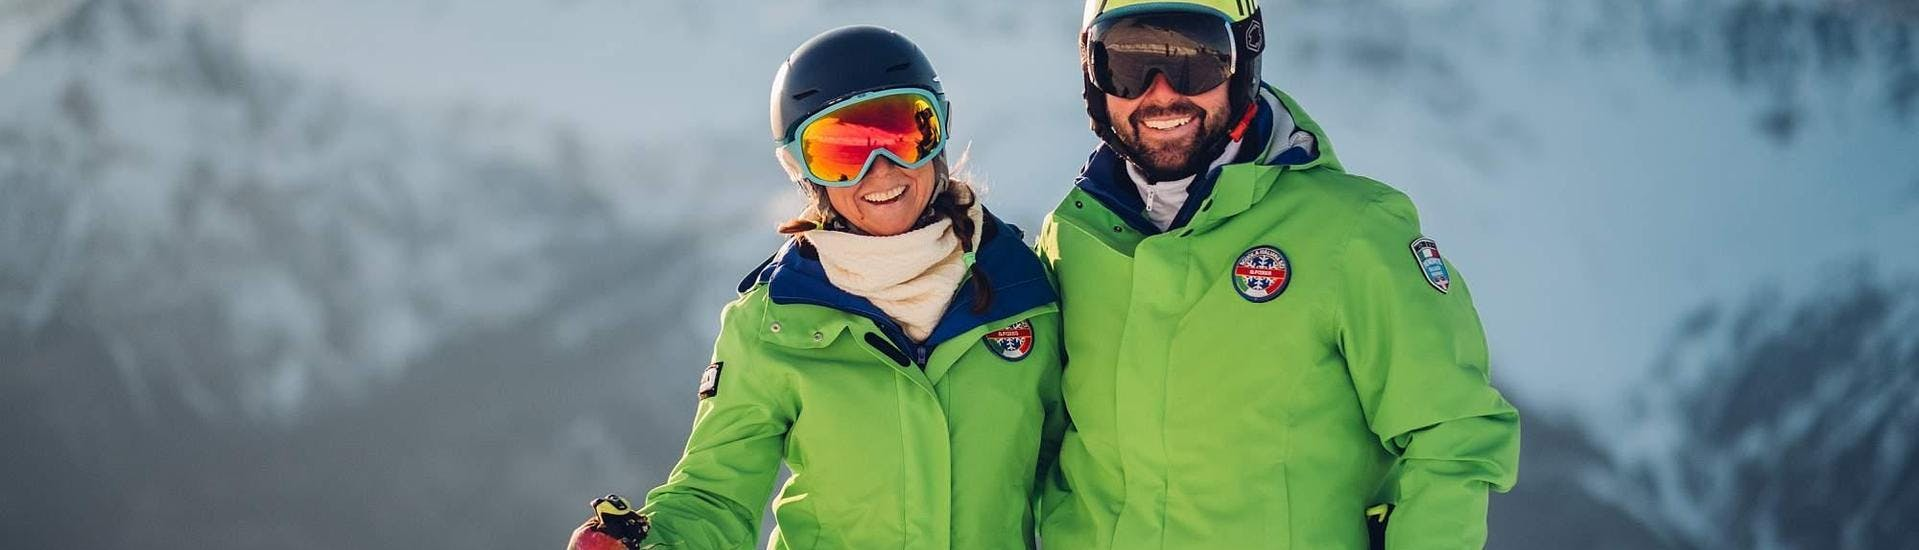 A happy skier with an ski instructor from the ski school Scuola di Sci B.foxes during the Private Ski Lessons for Adults - All Levels - Holidays.